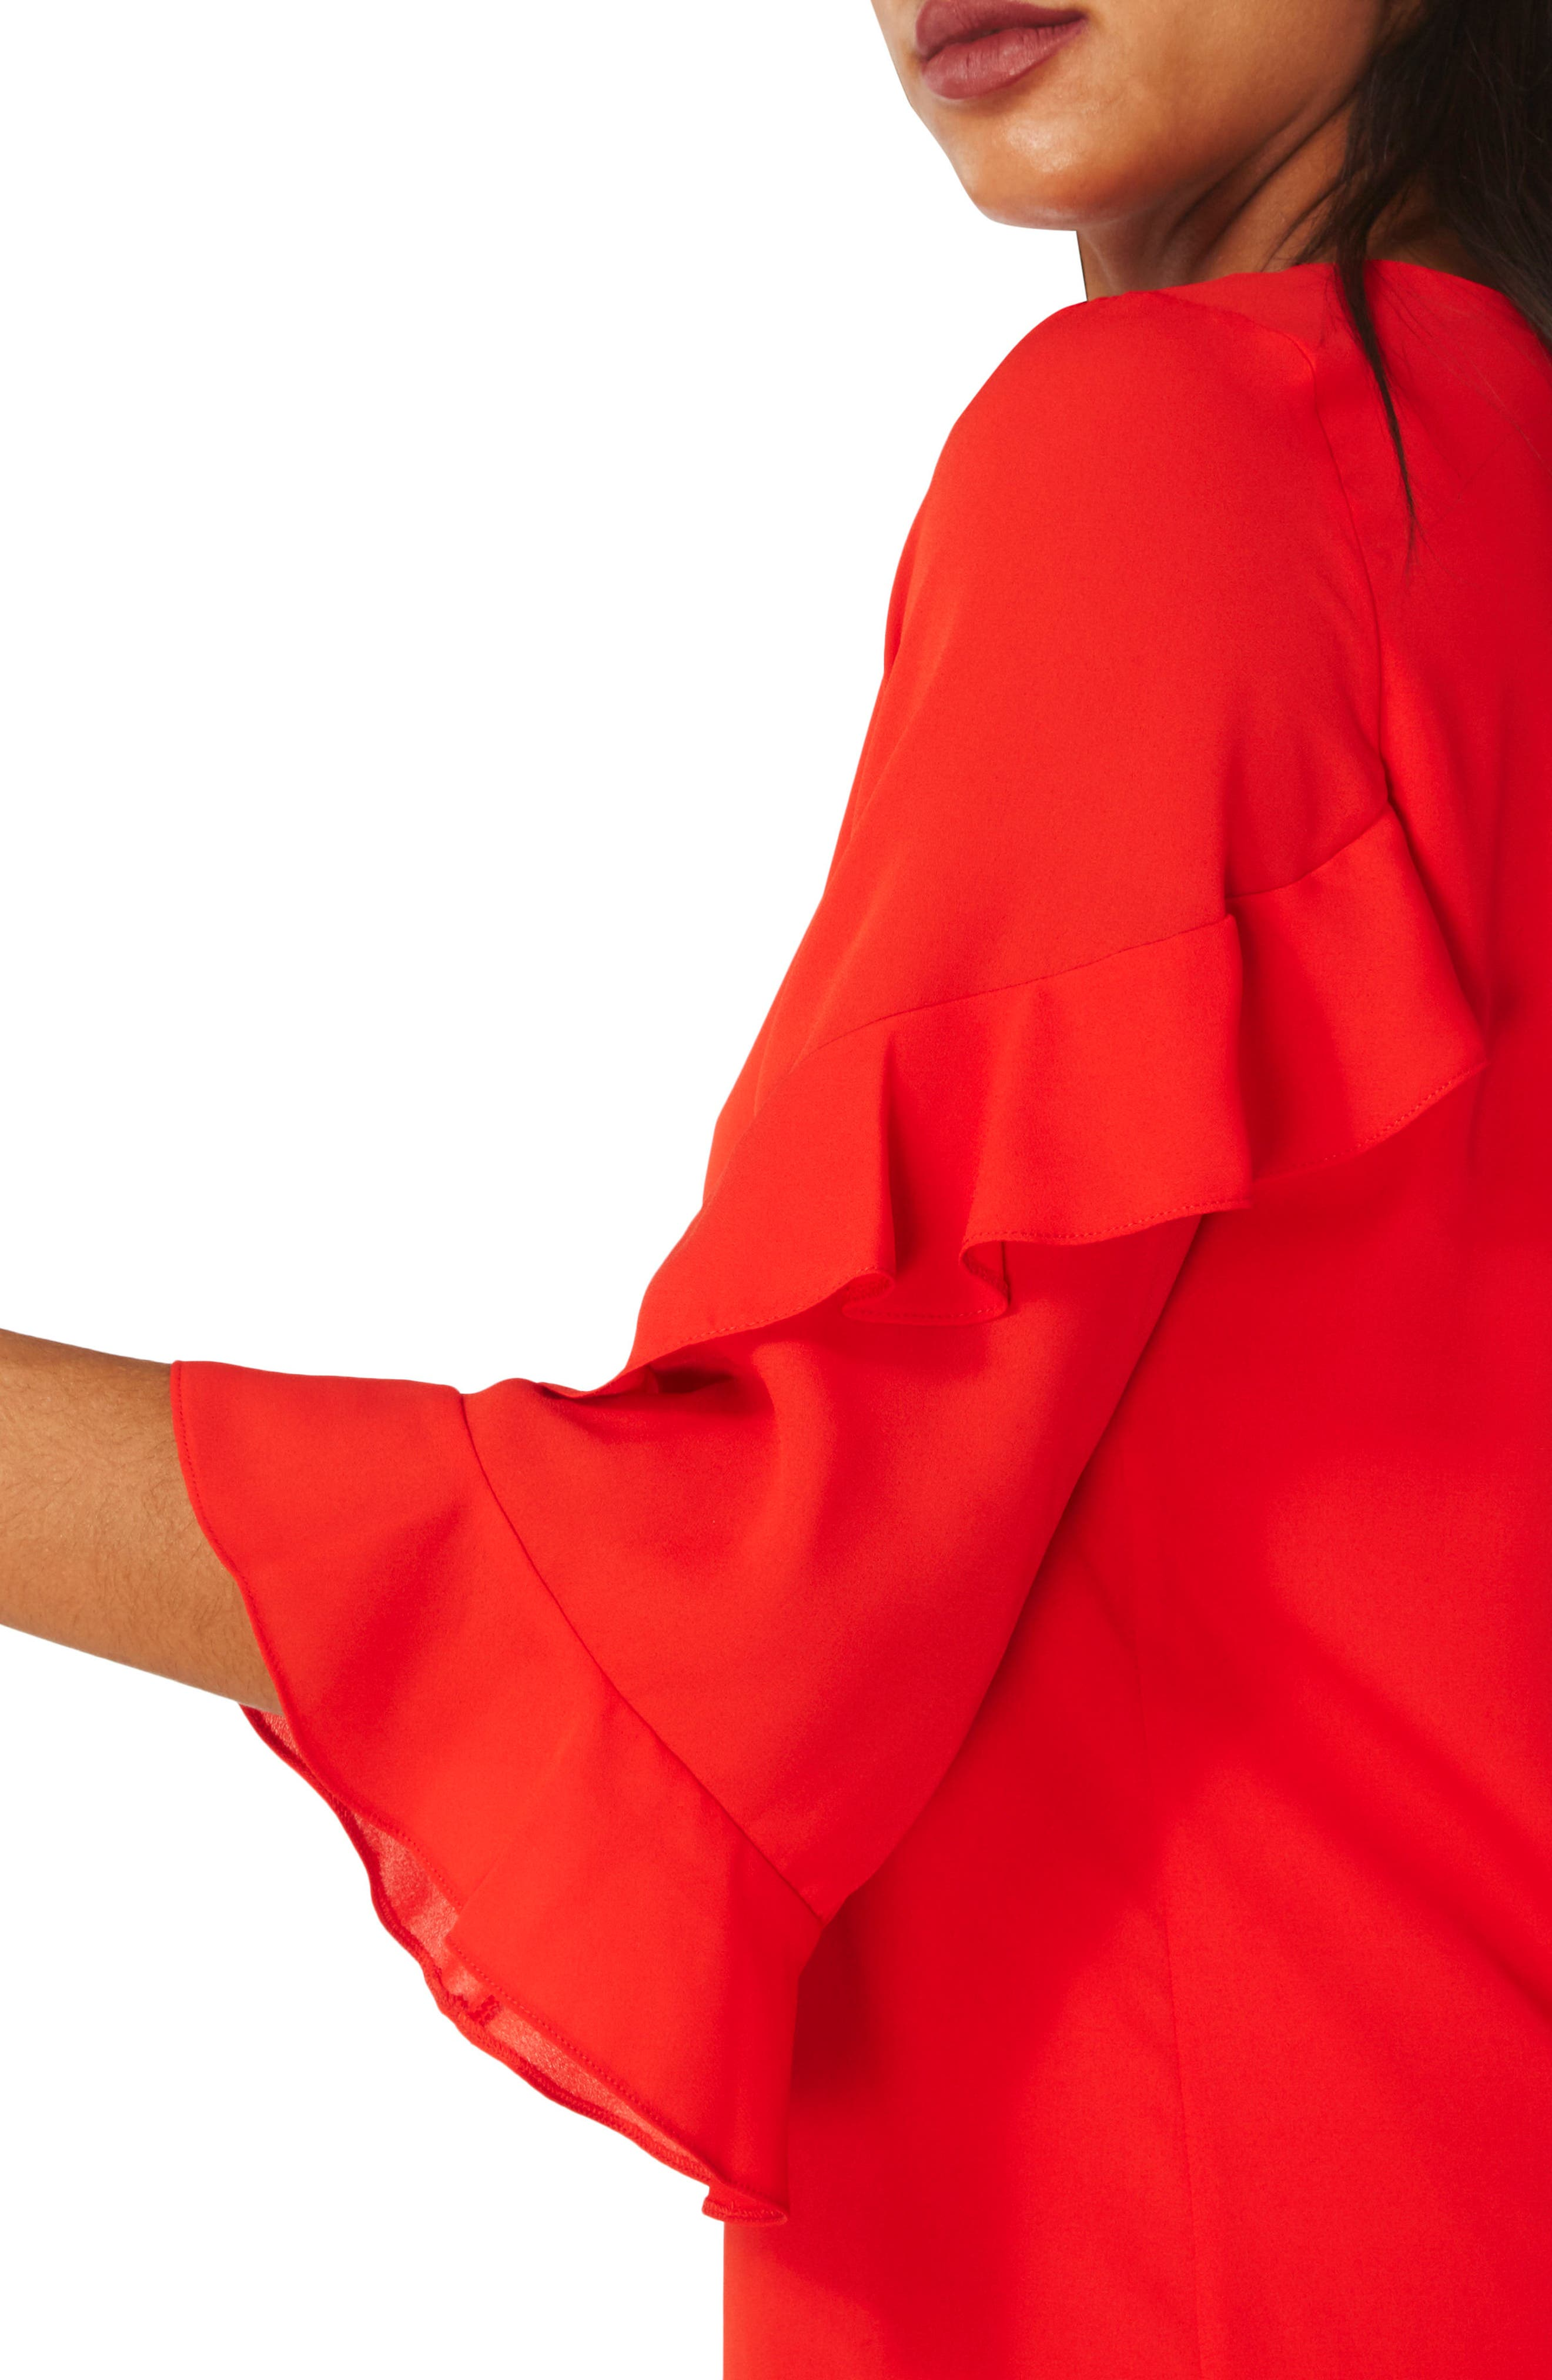 Ruffle Bell Sleeve Shift Dress,                             Alternate thumbnail 4, color,                             Red